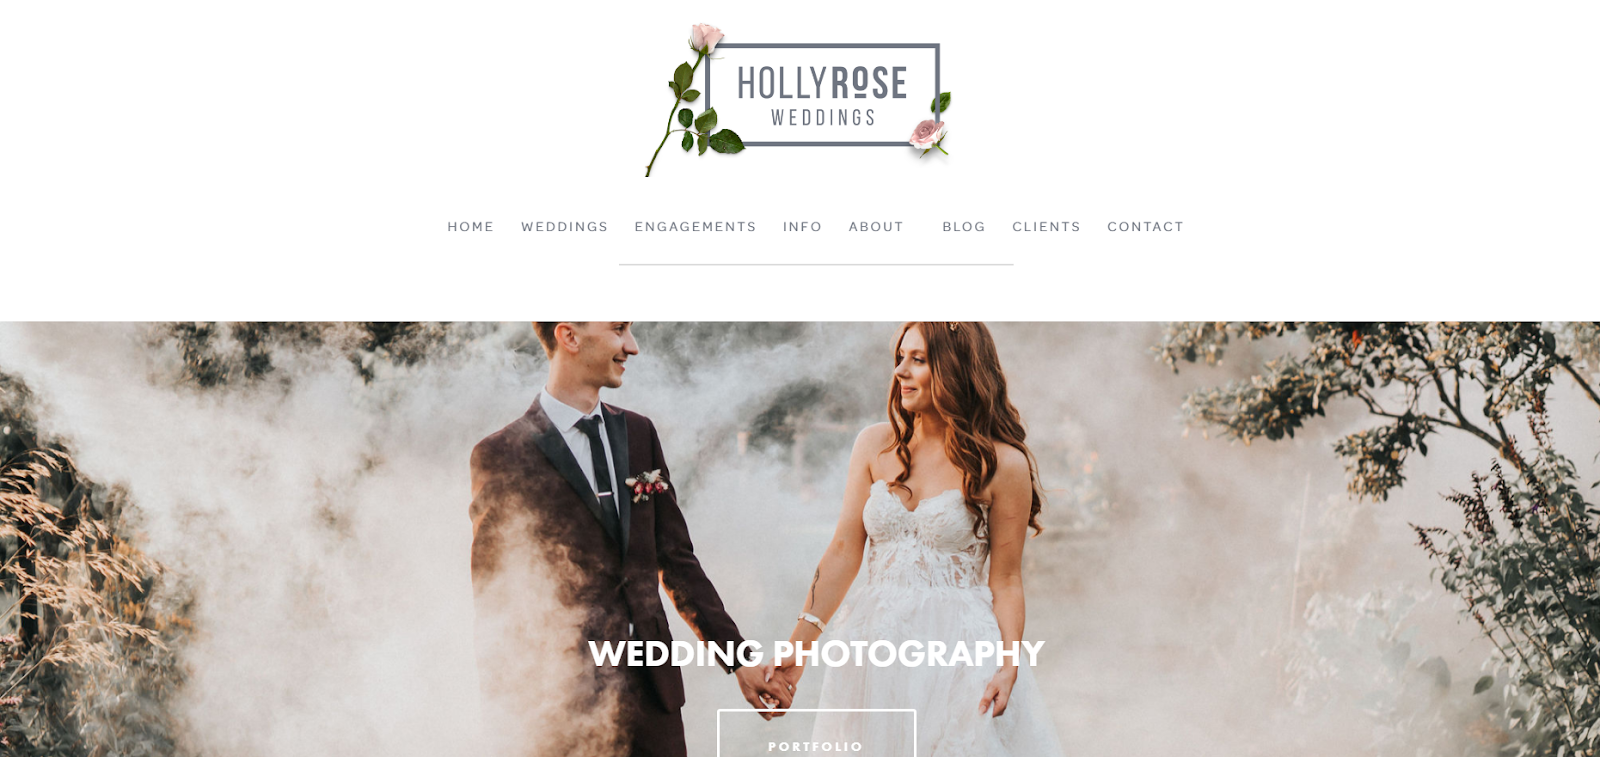 wedding photography site homepage with married couple